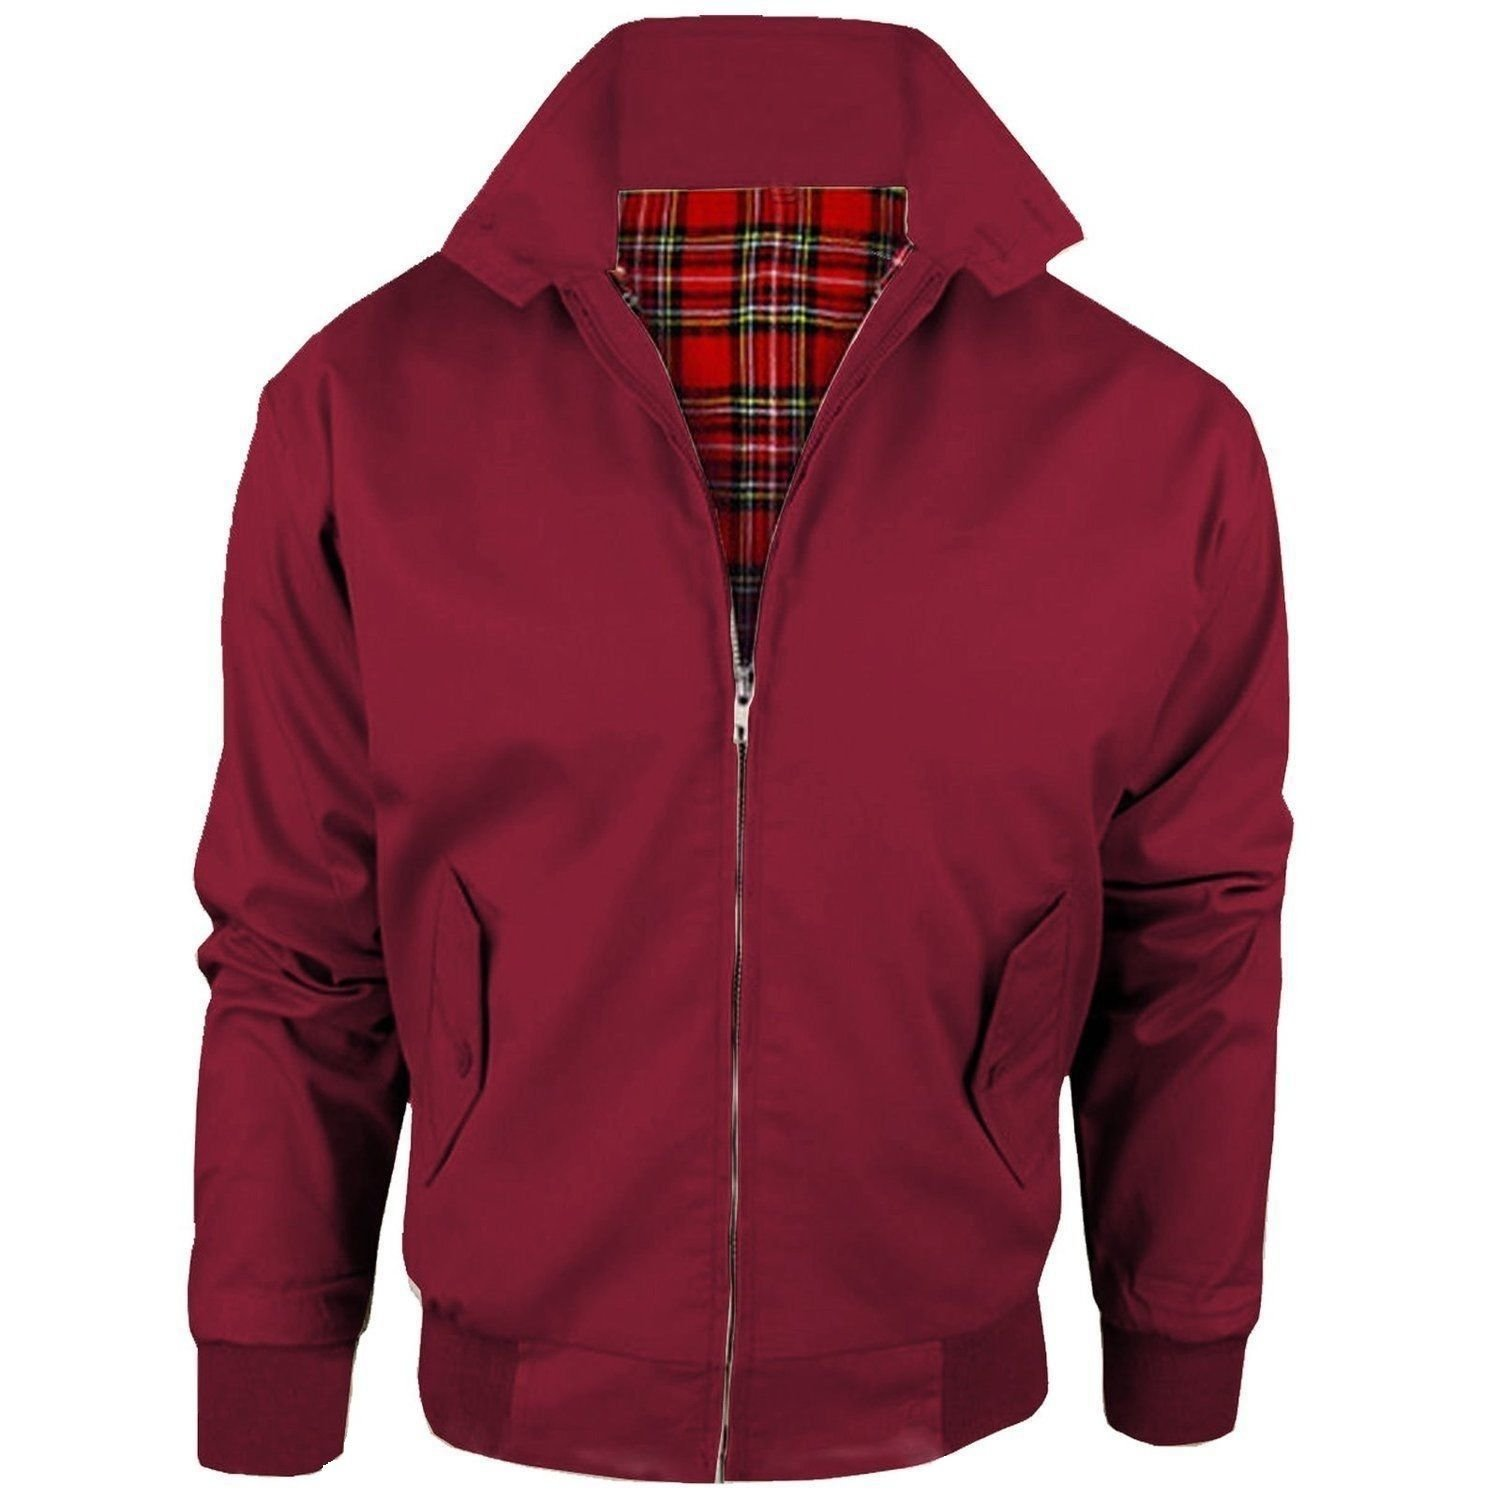 Malaika® Harrington Jacket Men's Classic Vintage Retro Scooter 1970'S Bomber Trendy Coat X-Small to XXXXX-Large Available in PLUS SIZES (Extra Small to 5XL)